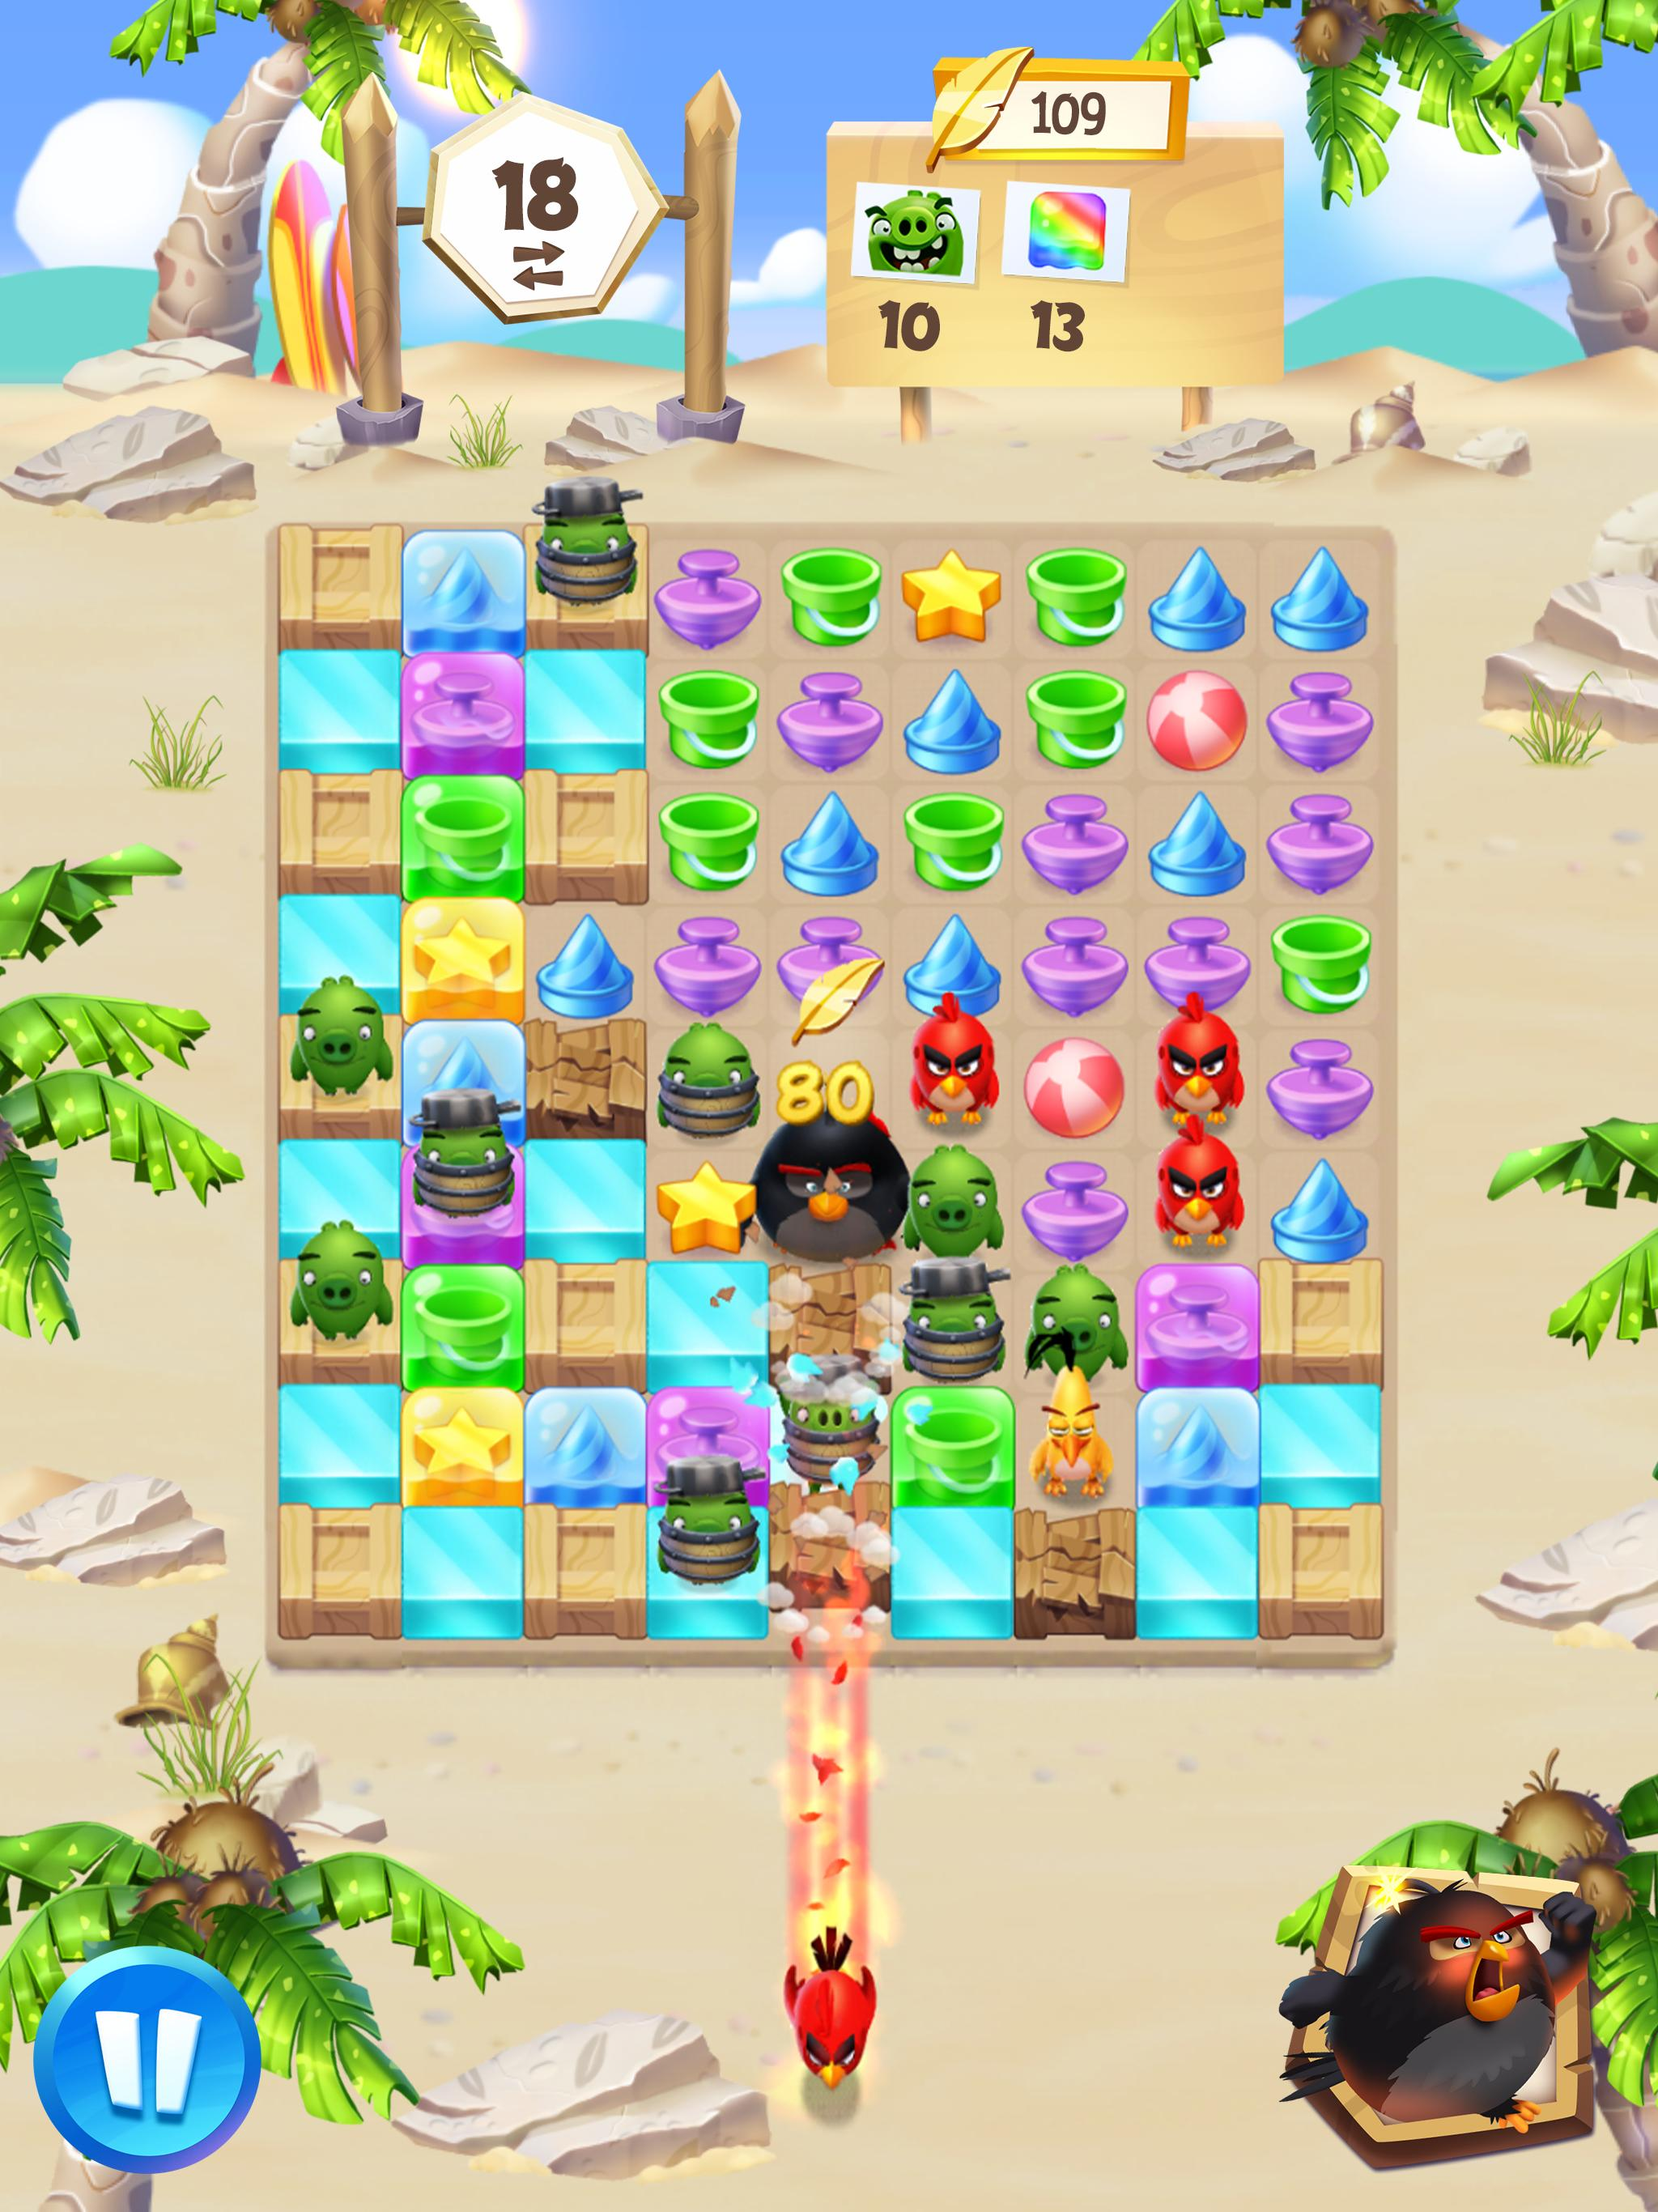 Angry Birds Match 3 3.1.0 Screenshot 15